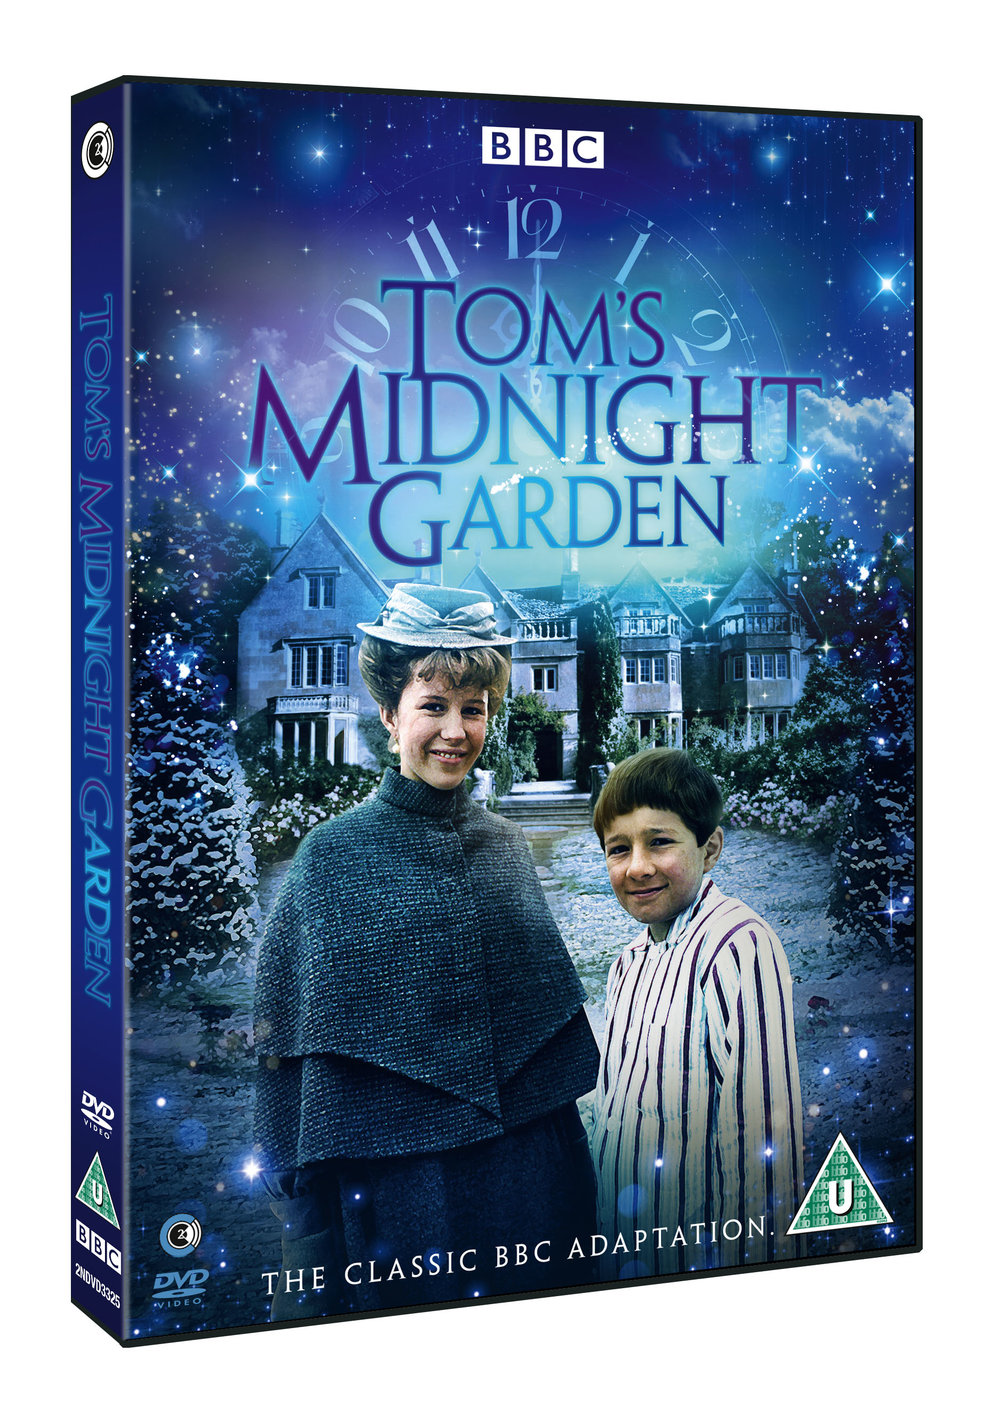 TOMS_MIDNIGHT_GARDEN_3D_DVD_PACKSHOT.jpg